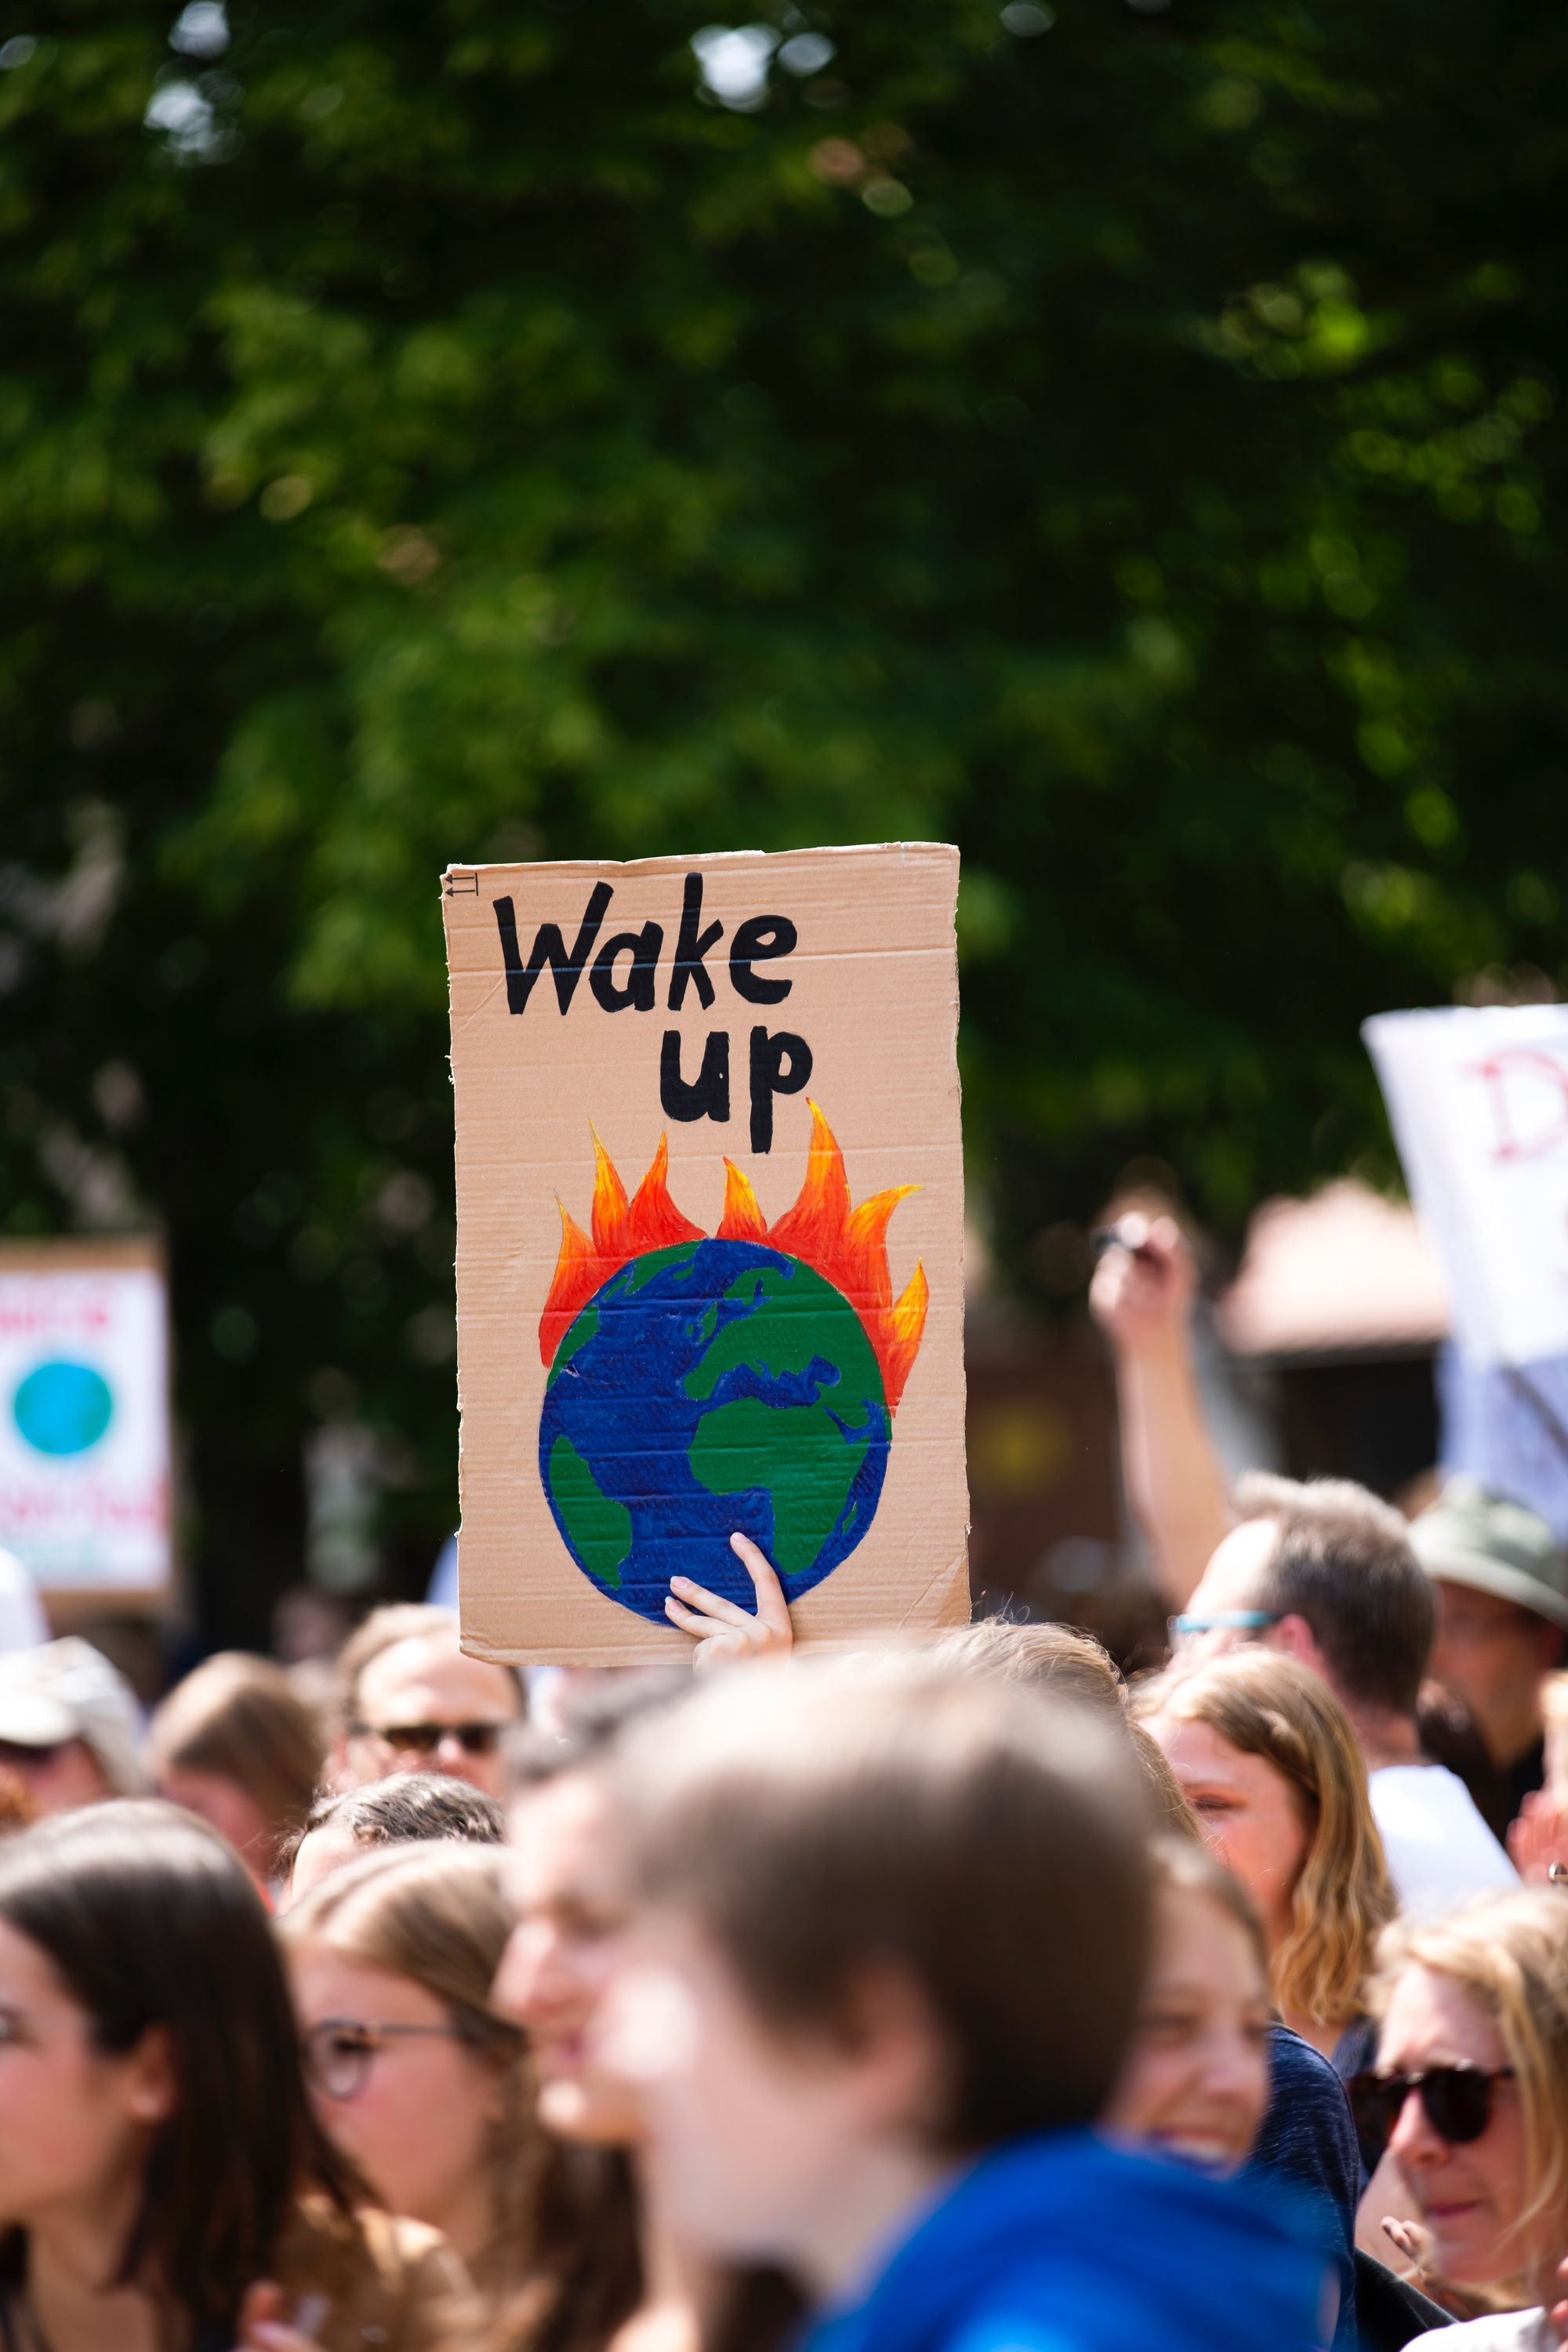 On 'Global Warming in Local Discourses: How Communities around the World Make Sense of Climate Change'